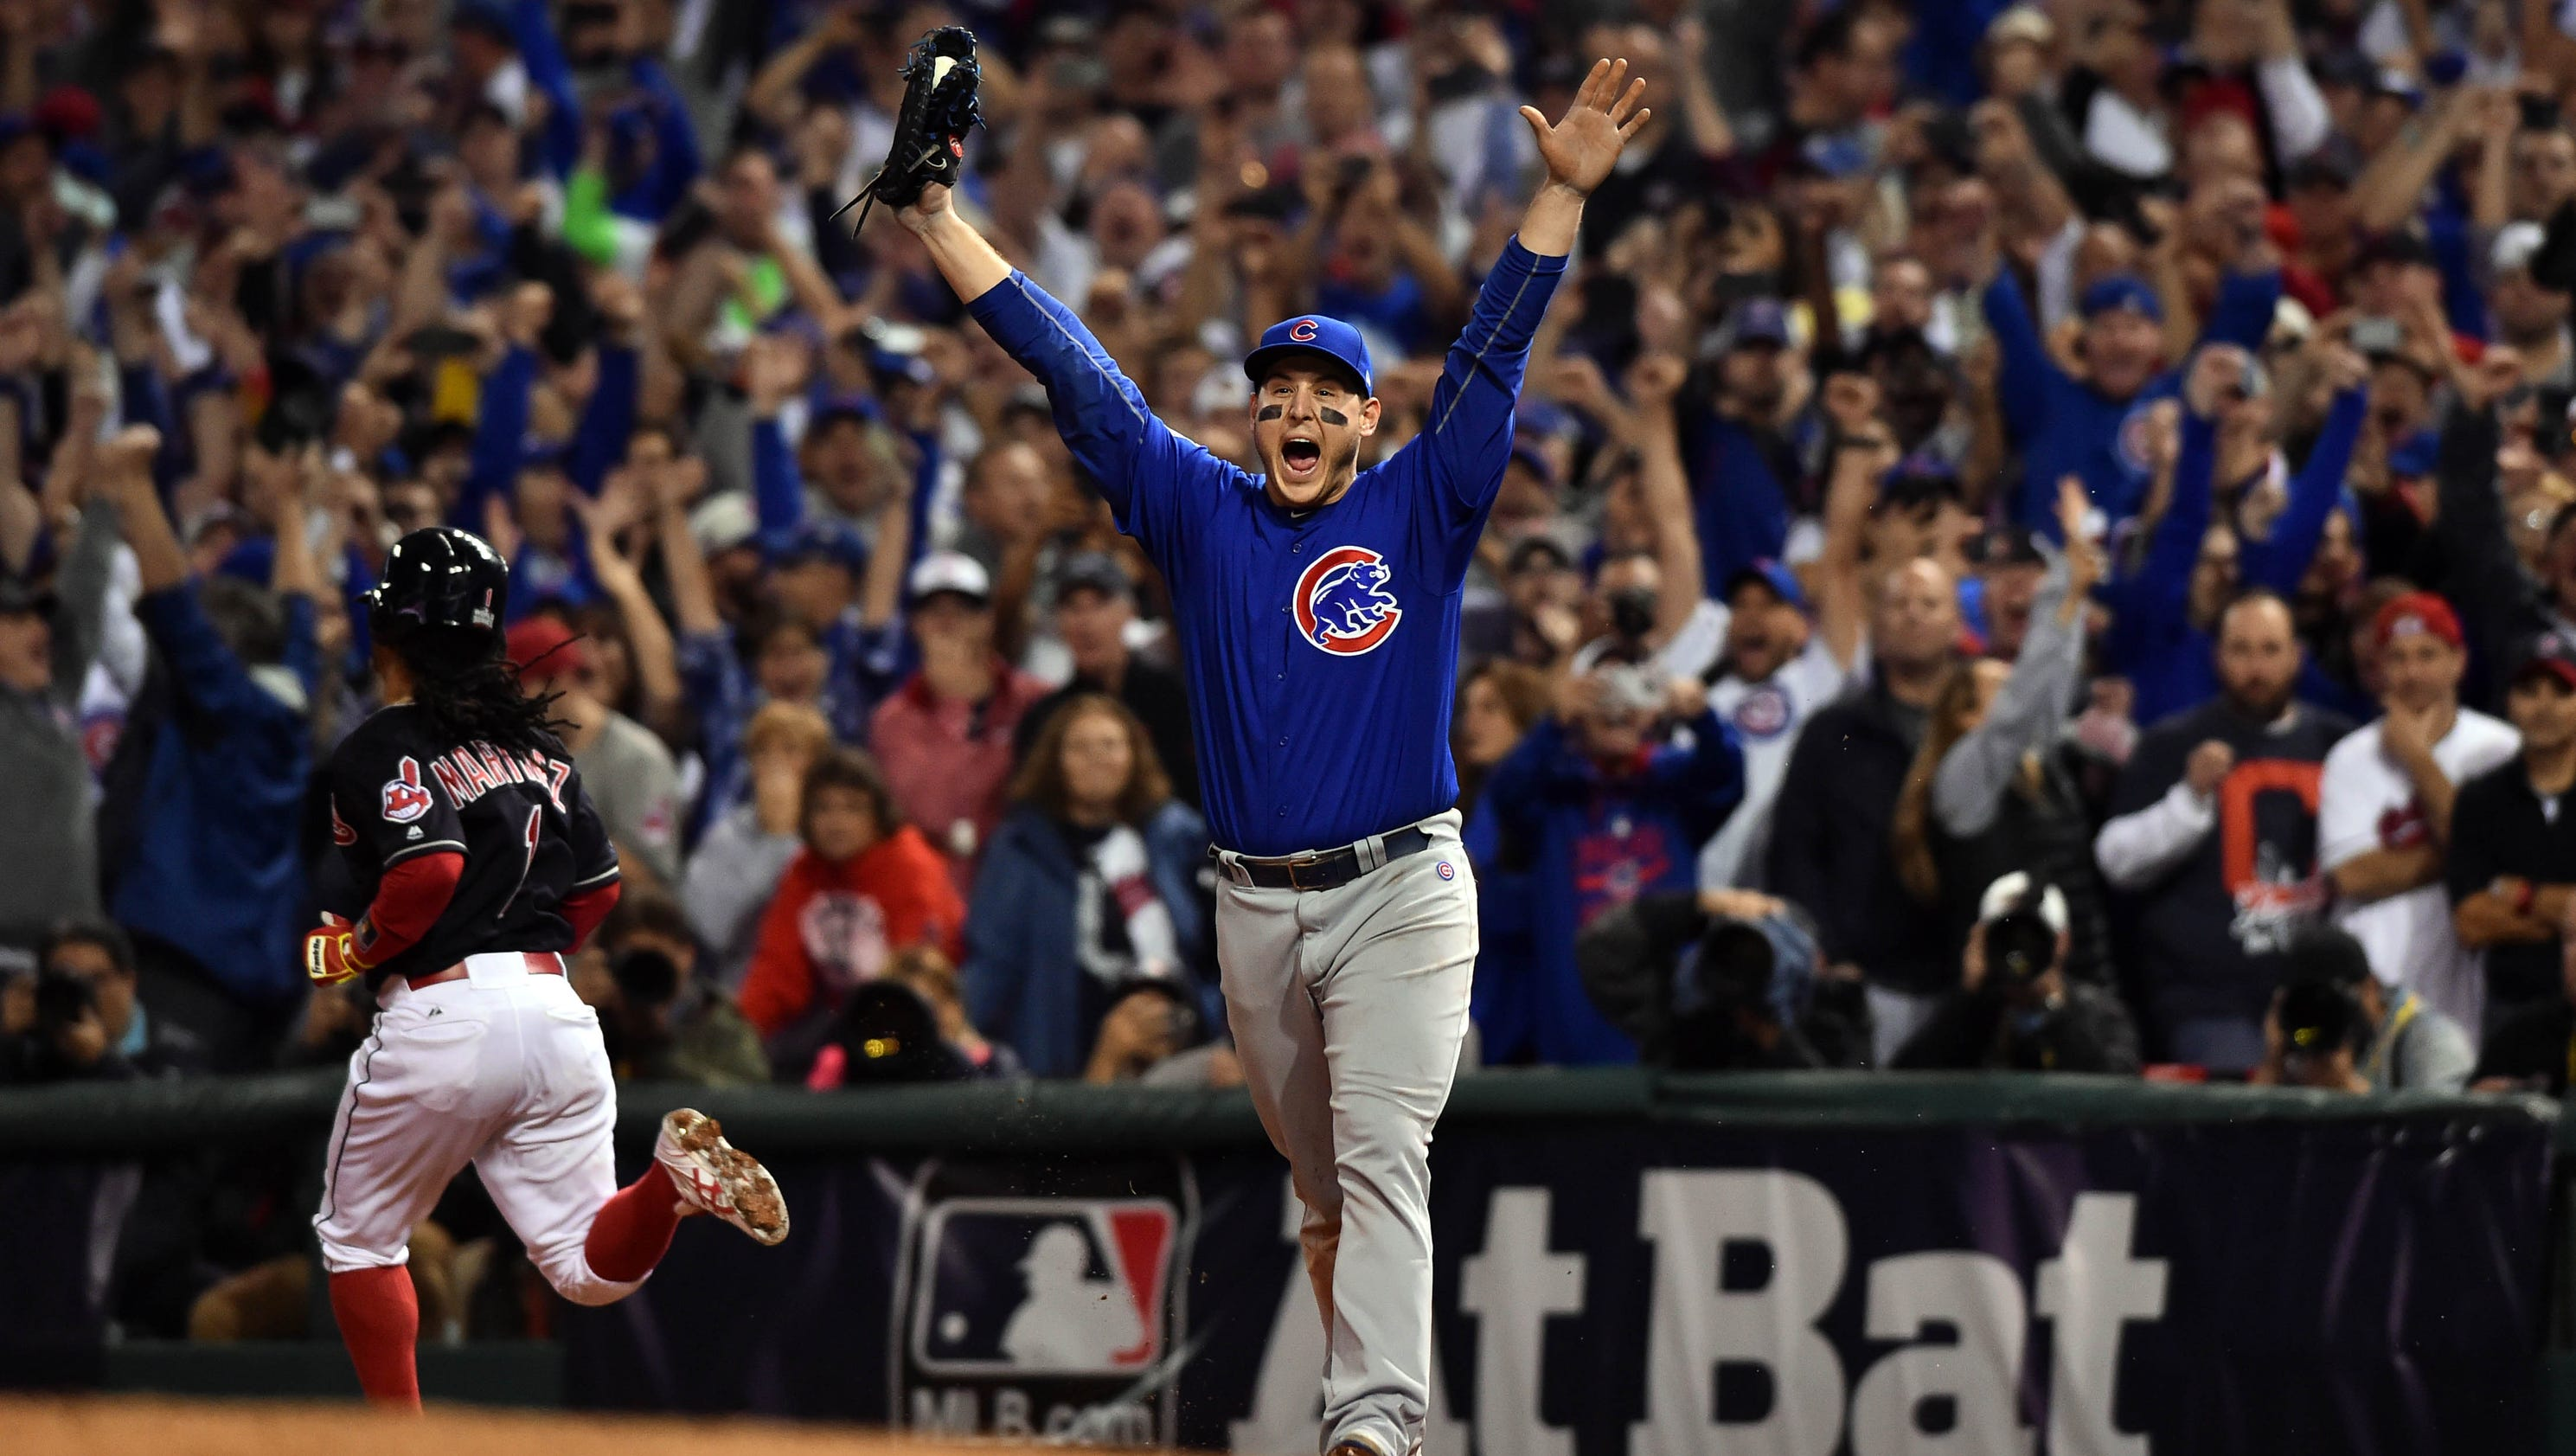 How The Cubs Erased A 3 1 Deficit To Win The World Series